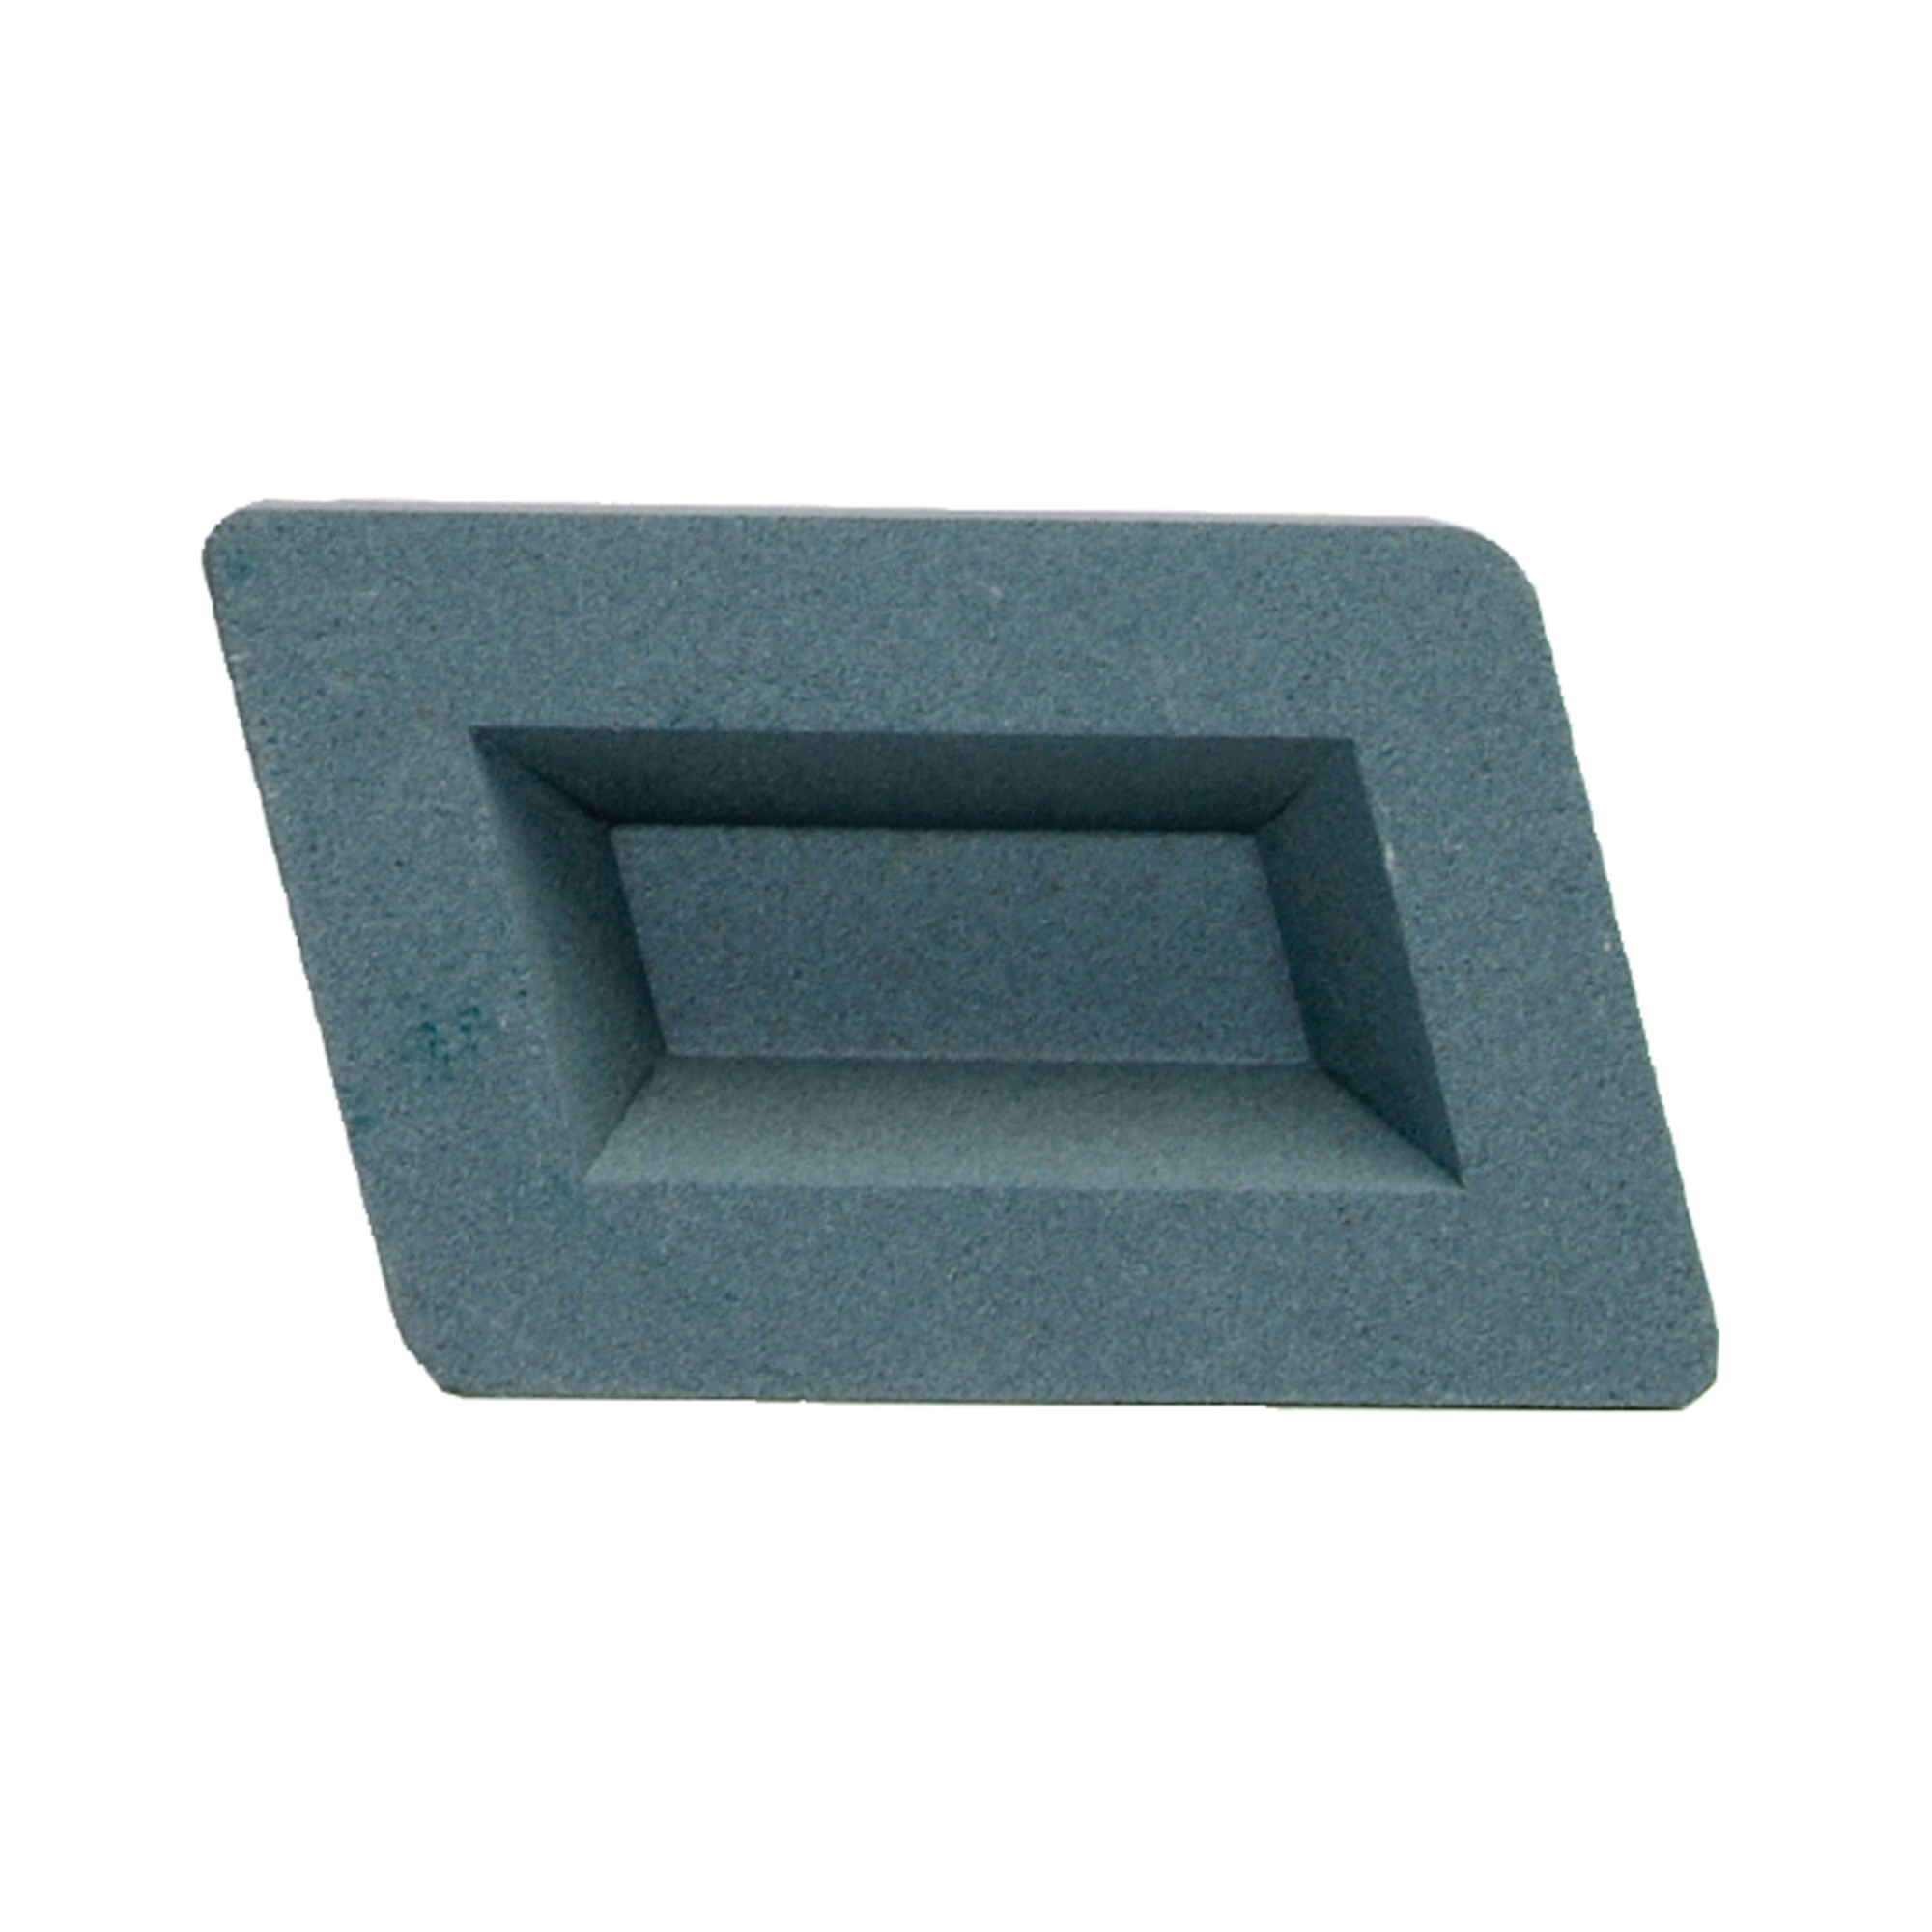 Norton® 61463650268 39C Surface Grinding Segment, 4-1/8 in H x 6-1/4 in W x 1-5/8 in THK, 180 Grit, Silicon Carbide Abrasive